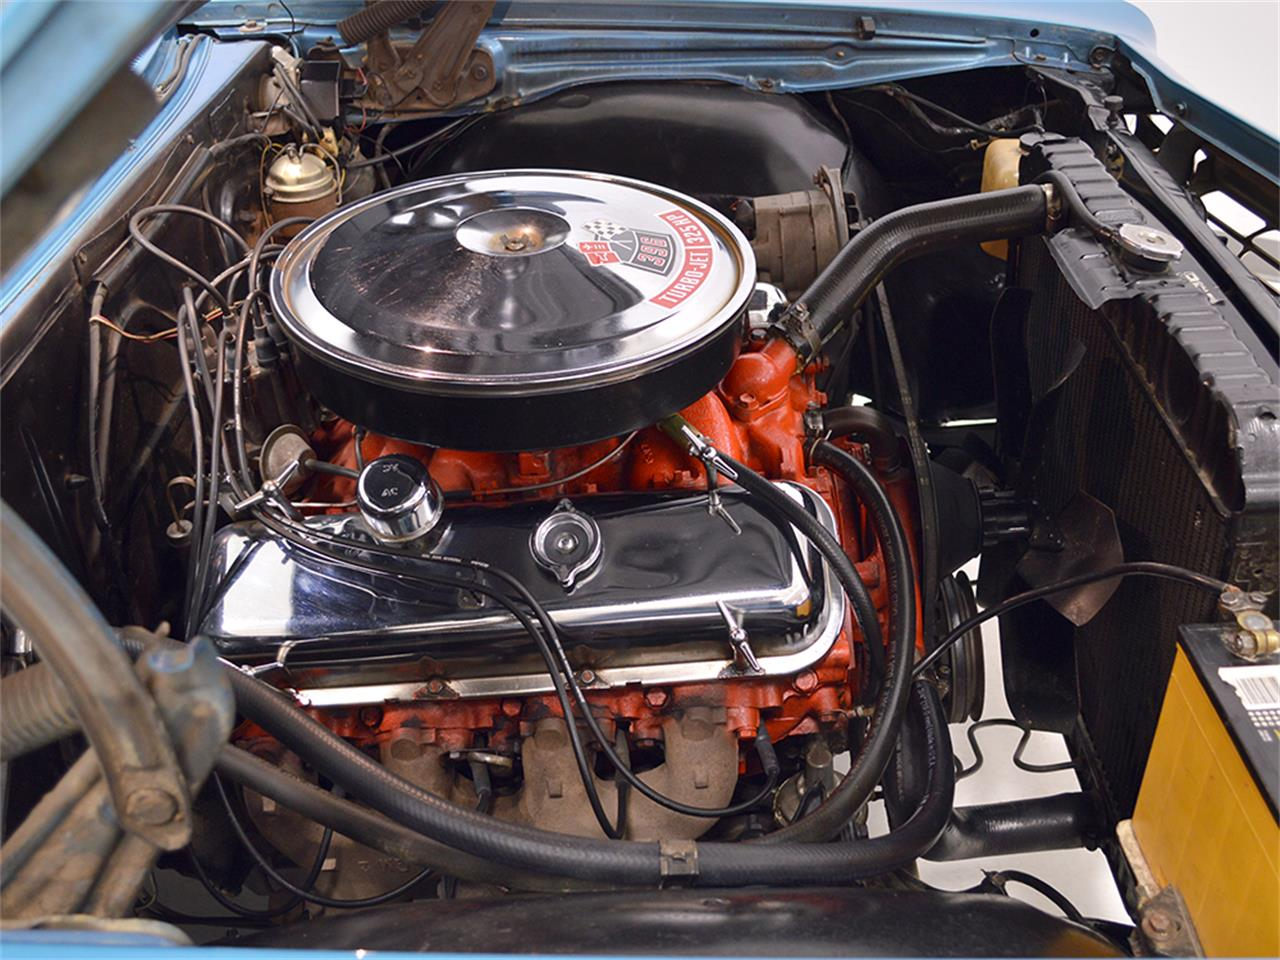 1966 Chevrolet Impala Ss For Sale Cc 974158 Chevy Carburetor Large Picture Of 66 Located In Ohio Kvny